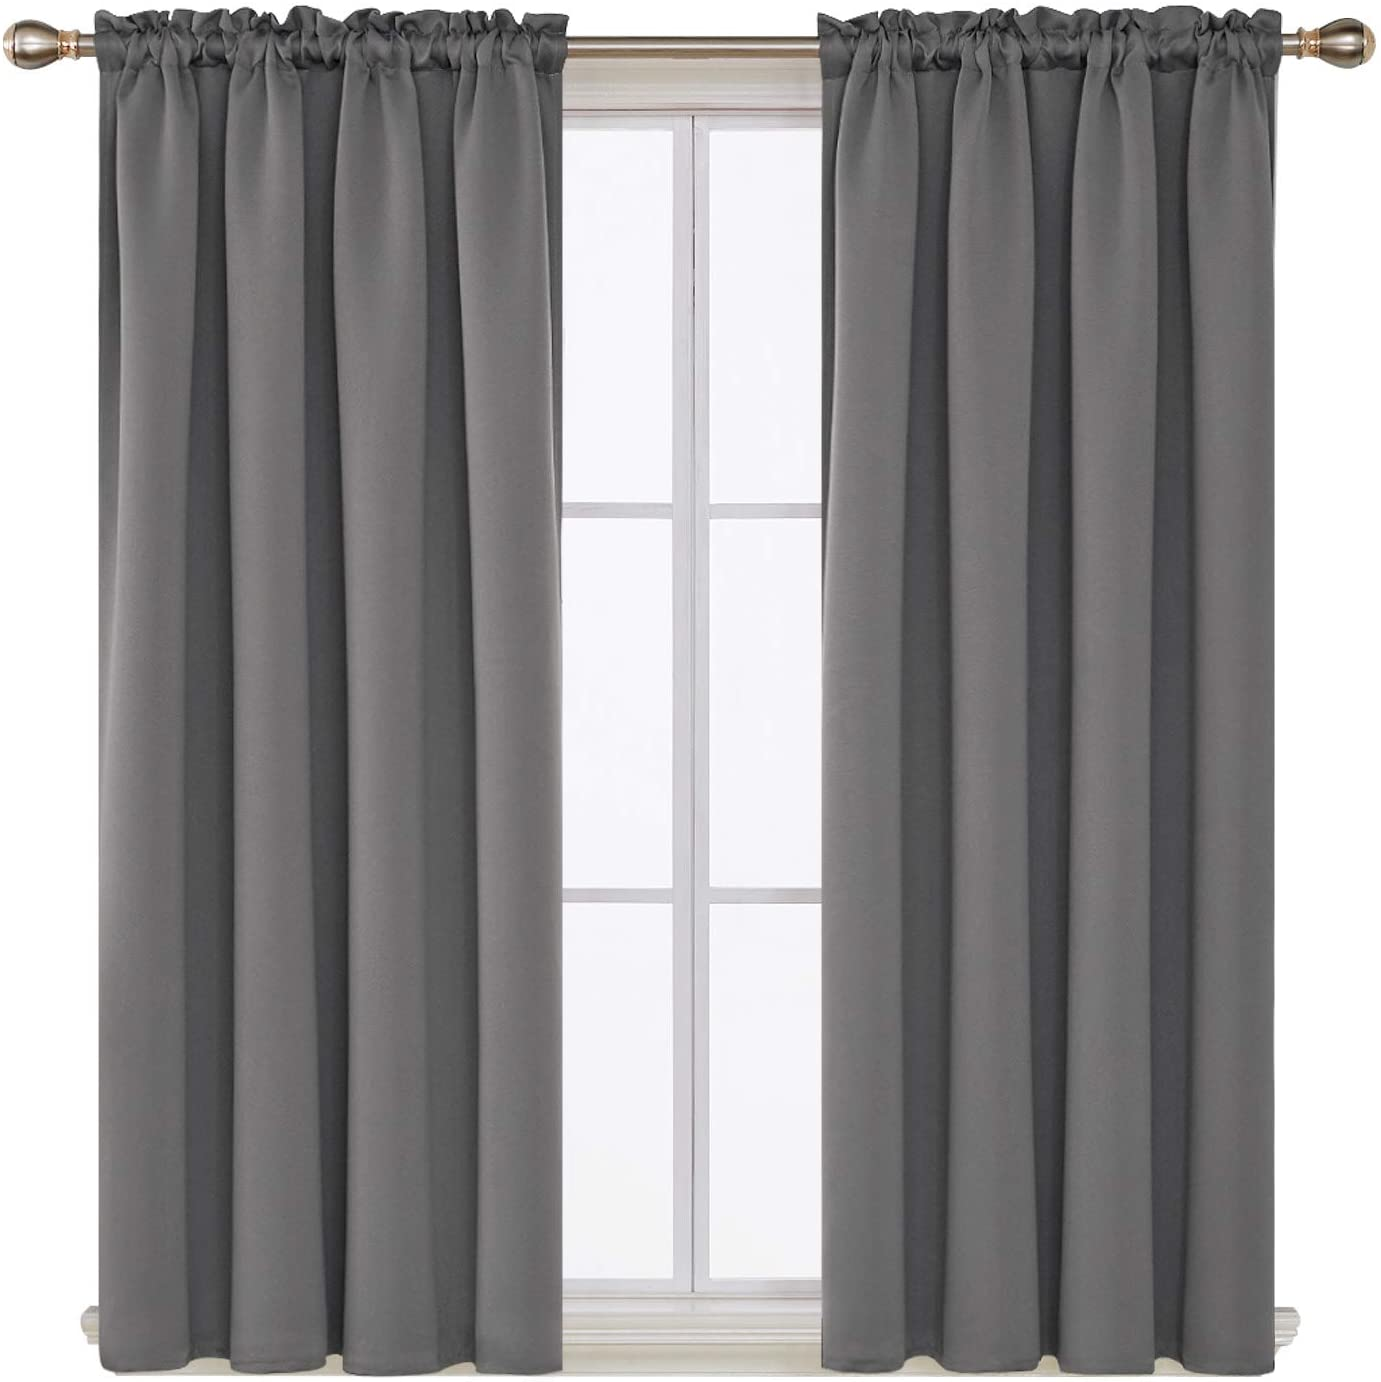 deconovo light grey blackout curtains rod pocket curtain panels thermal insulated curtains for nursery 52w x 45l inch 2 panels